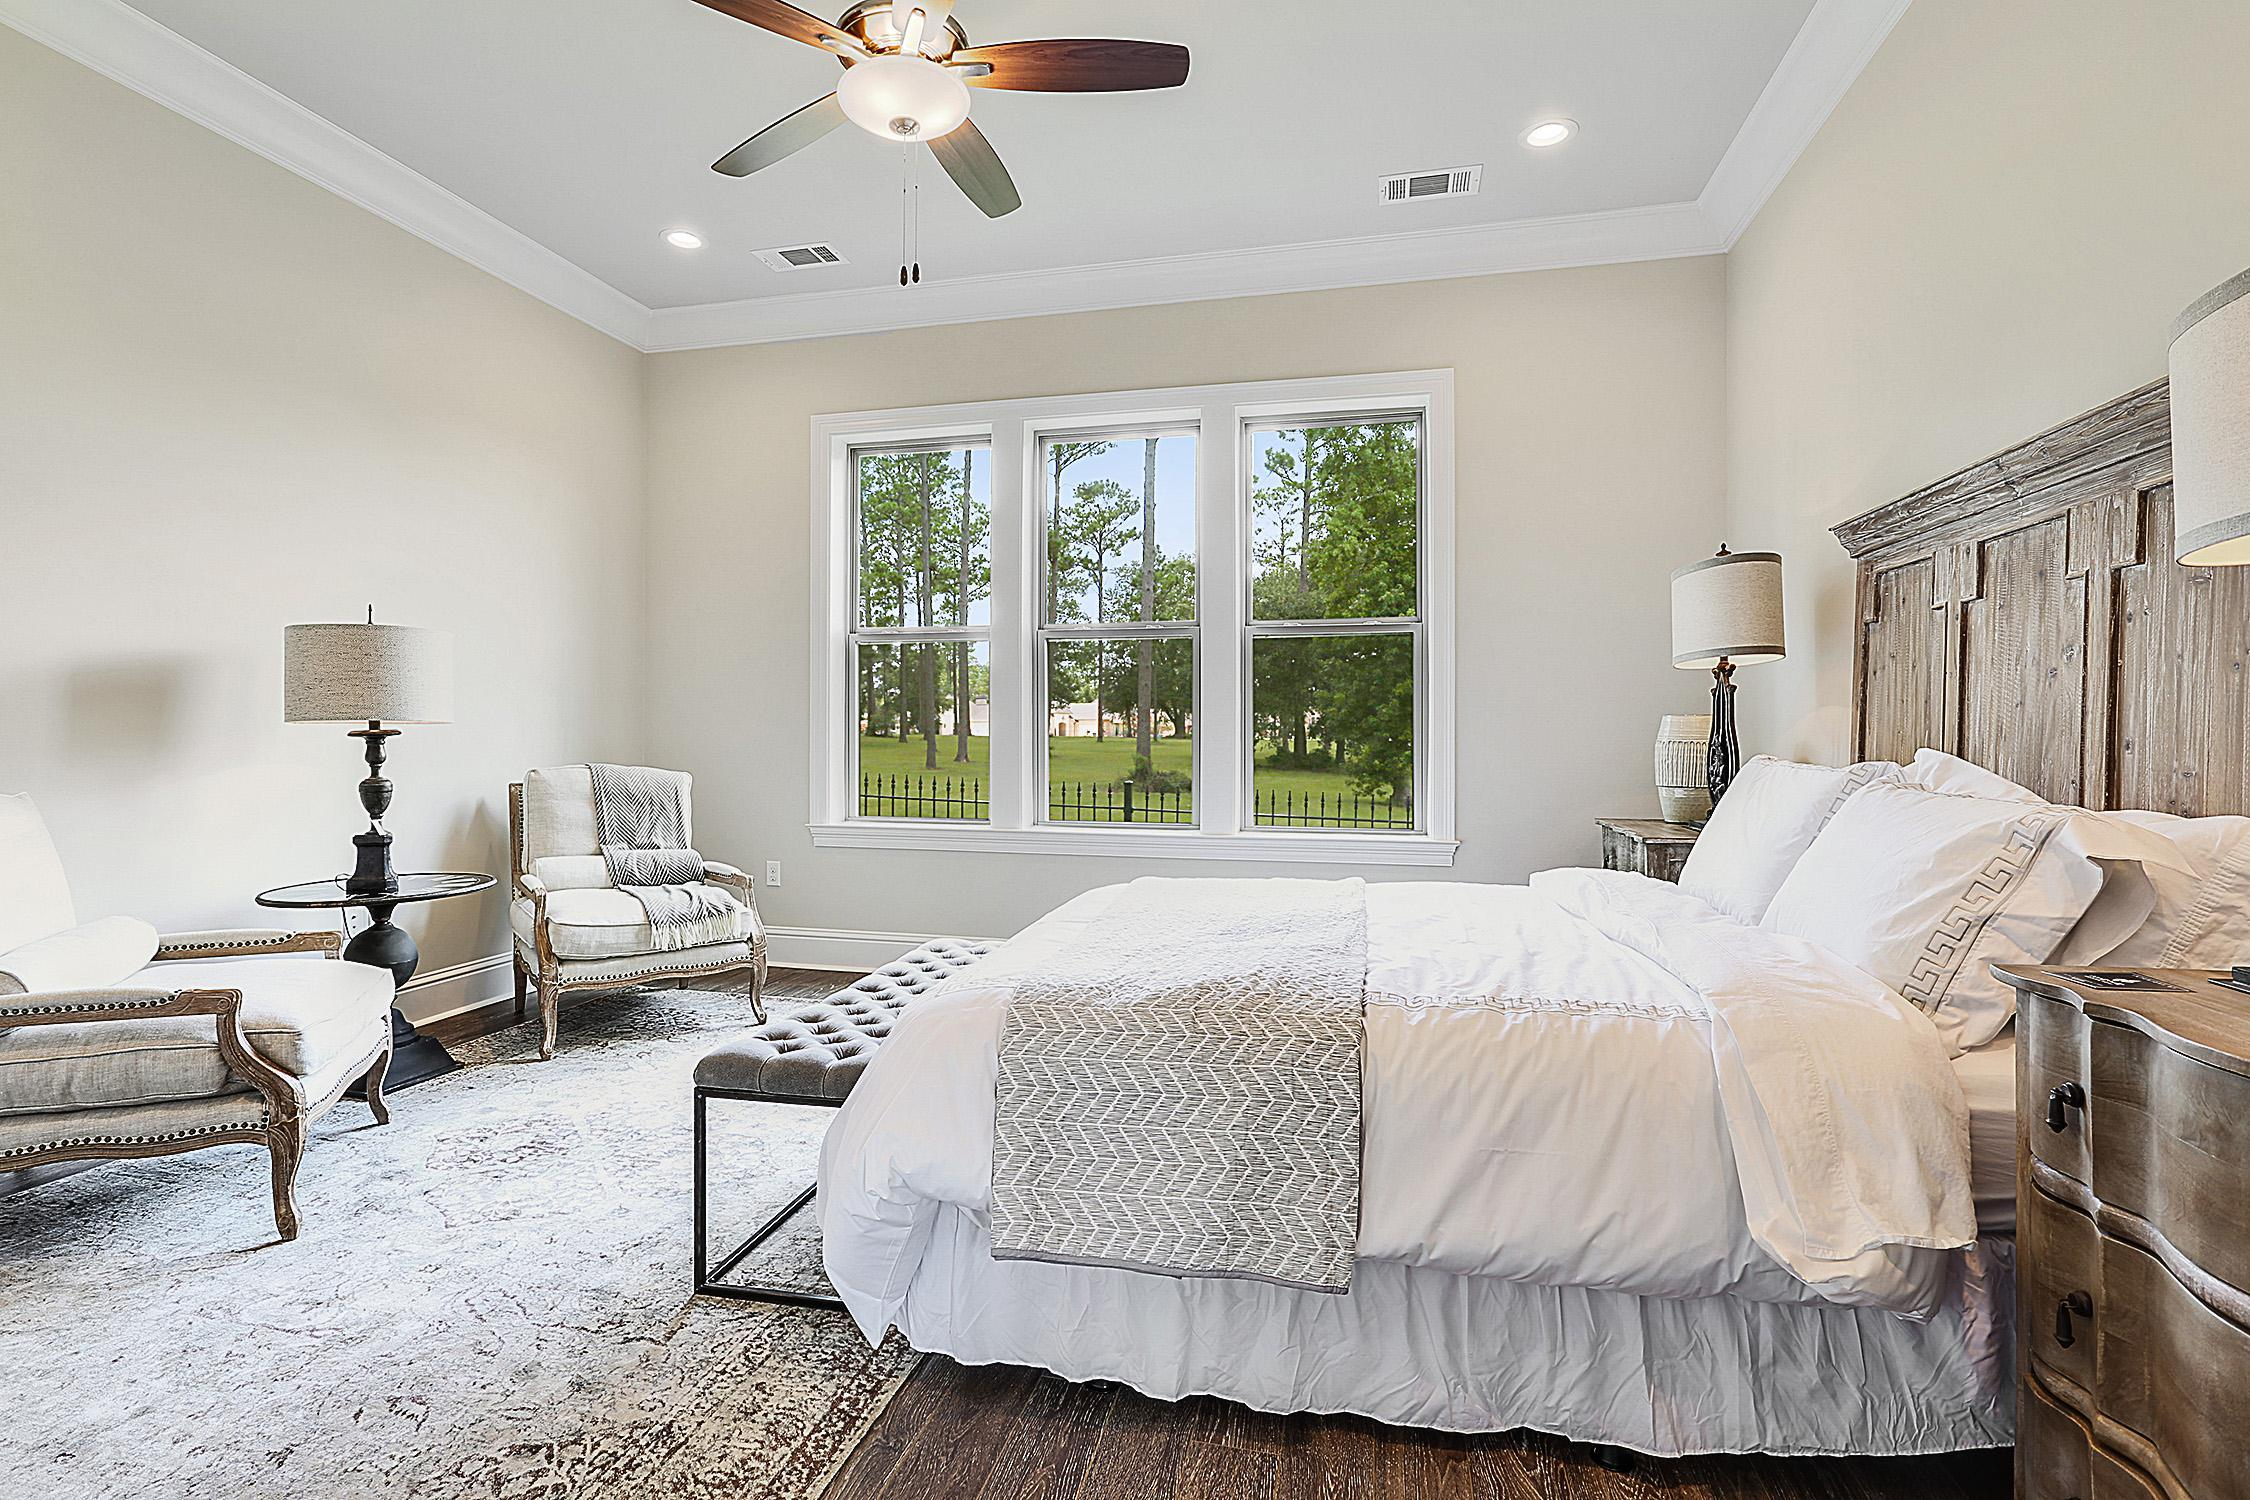 Bedroom featured in the Danielle By Highland Homes in New Orleans, LA